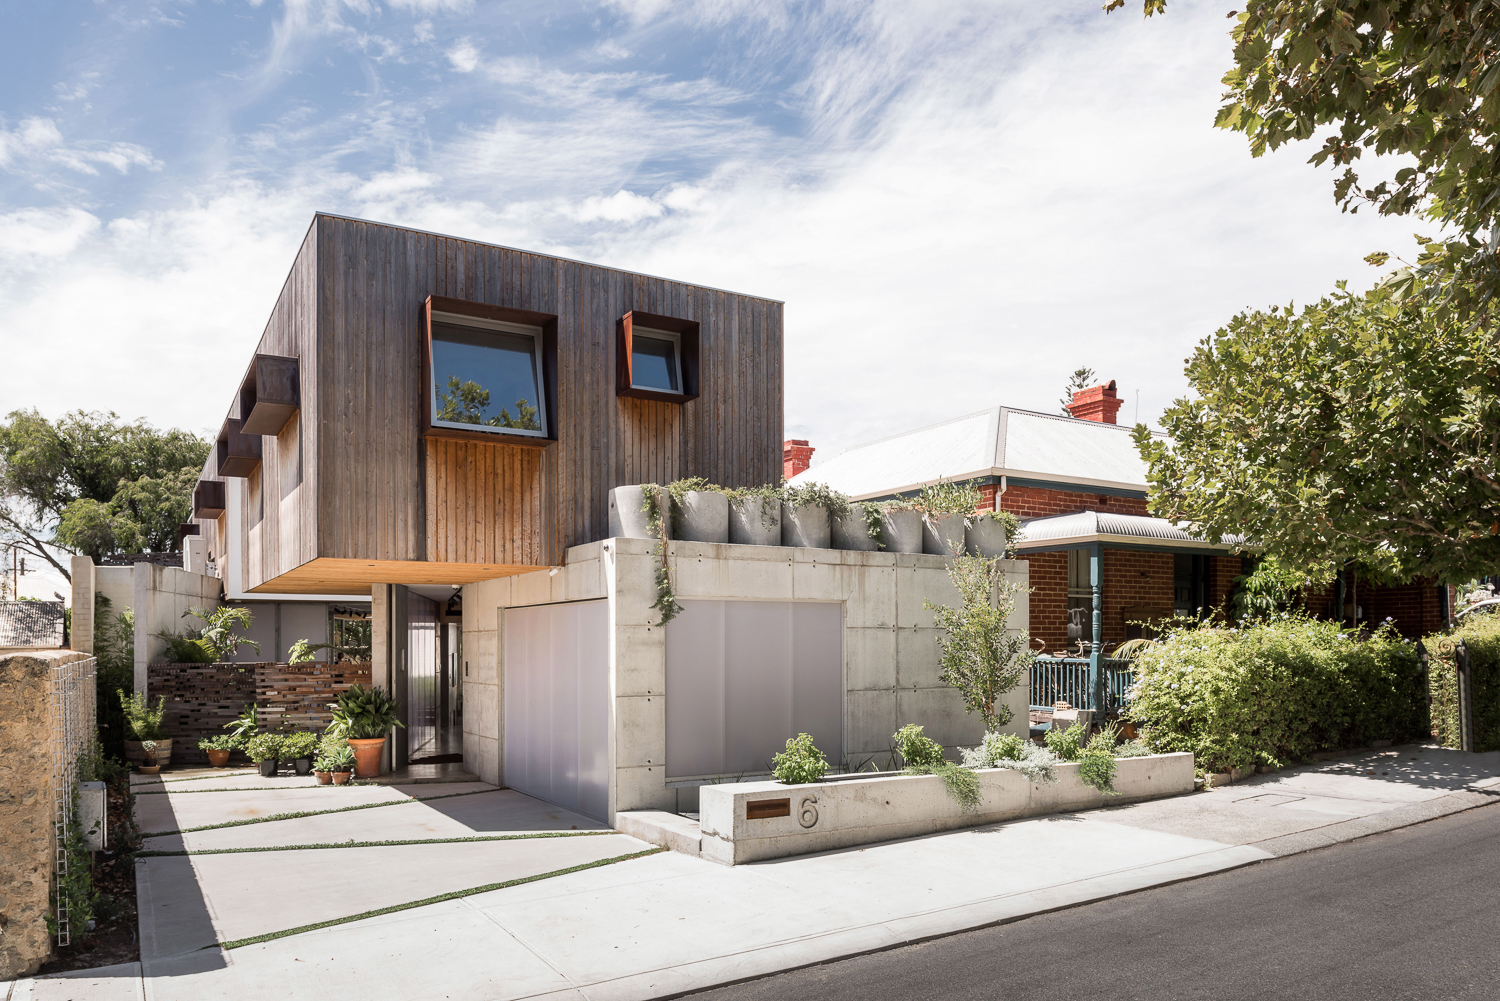 Gallery Of Silver Street House By Ehdo Architecture Local Design And Interiors South Fremantle, Wa Image 19